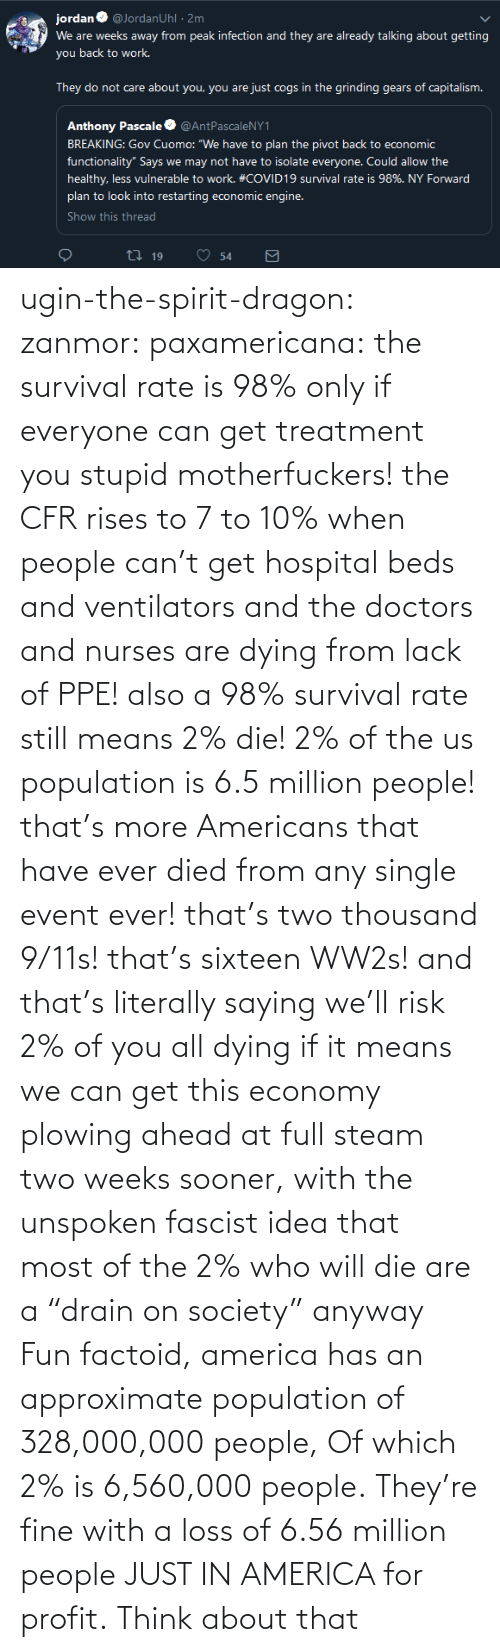 """America, Steam, and Tumblr: ugin-the-spirit-dragon: zanmor:   paxamericana:  the survival rate is 98% only if everyone can get treatment you stupid motherfuckers! the CFR rises to 7 to 10% when people can't get hospital beds and ventilators and the doctors and nurses are dying from lack of PPE!  also a 98% survival rate still means 2% die! 2% of the us population is 6.5 million people! that's more Americans that have ever died from any single event ever! that's two thousand 9/11s! that's sixteen WW2s!  and that's literally saying we'll risk 2% of you all dying if it means we can get this economy plowing ahead at full steam two weeks sooner, with the unspoken fascist idea that most of the 2% who will die are a""""drain on society"""" anyway    Fun factoid, america has an approximate population of 328,000,000 people,  Of which 2% is 6,560,000 people. They're fine with a loss of 6.56 million people JUST IN AMERICA for profit. Think about that"""